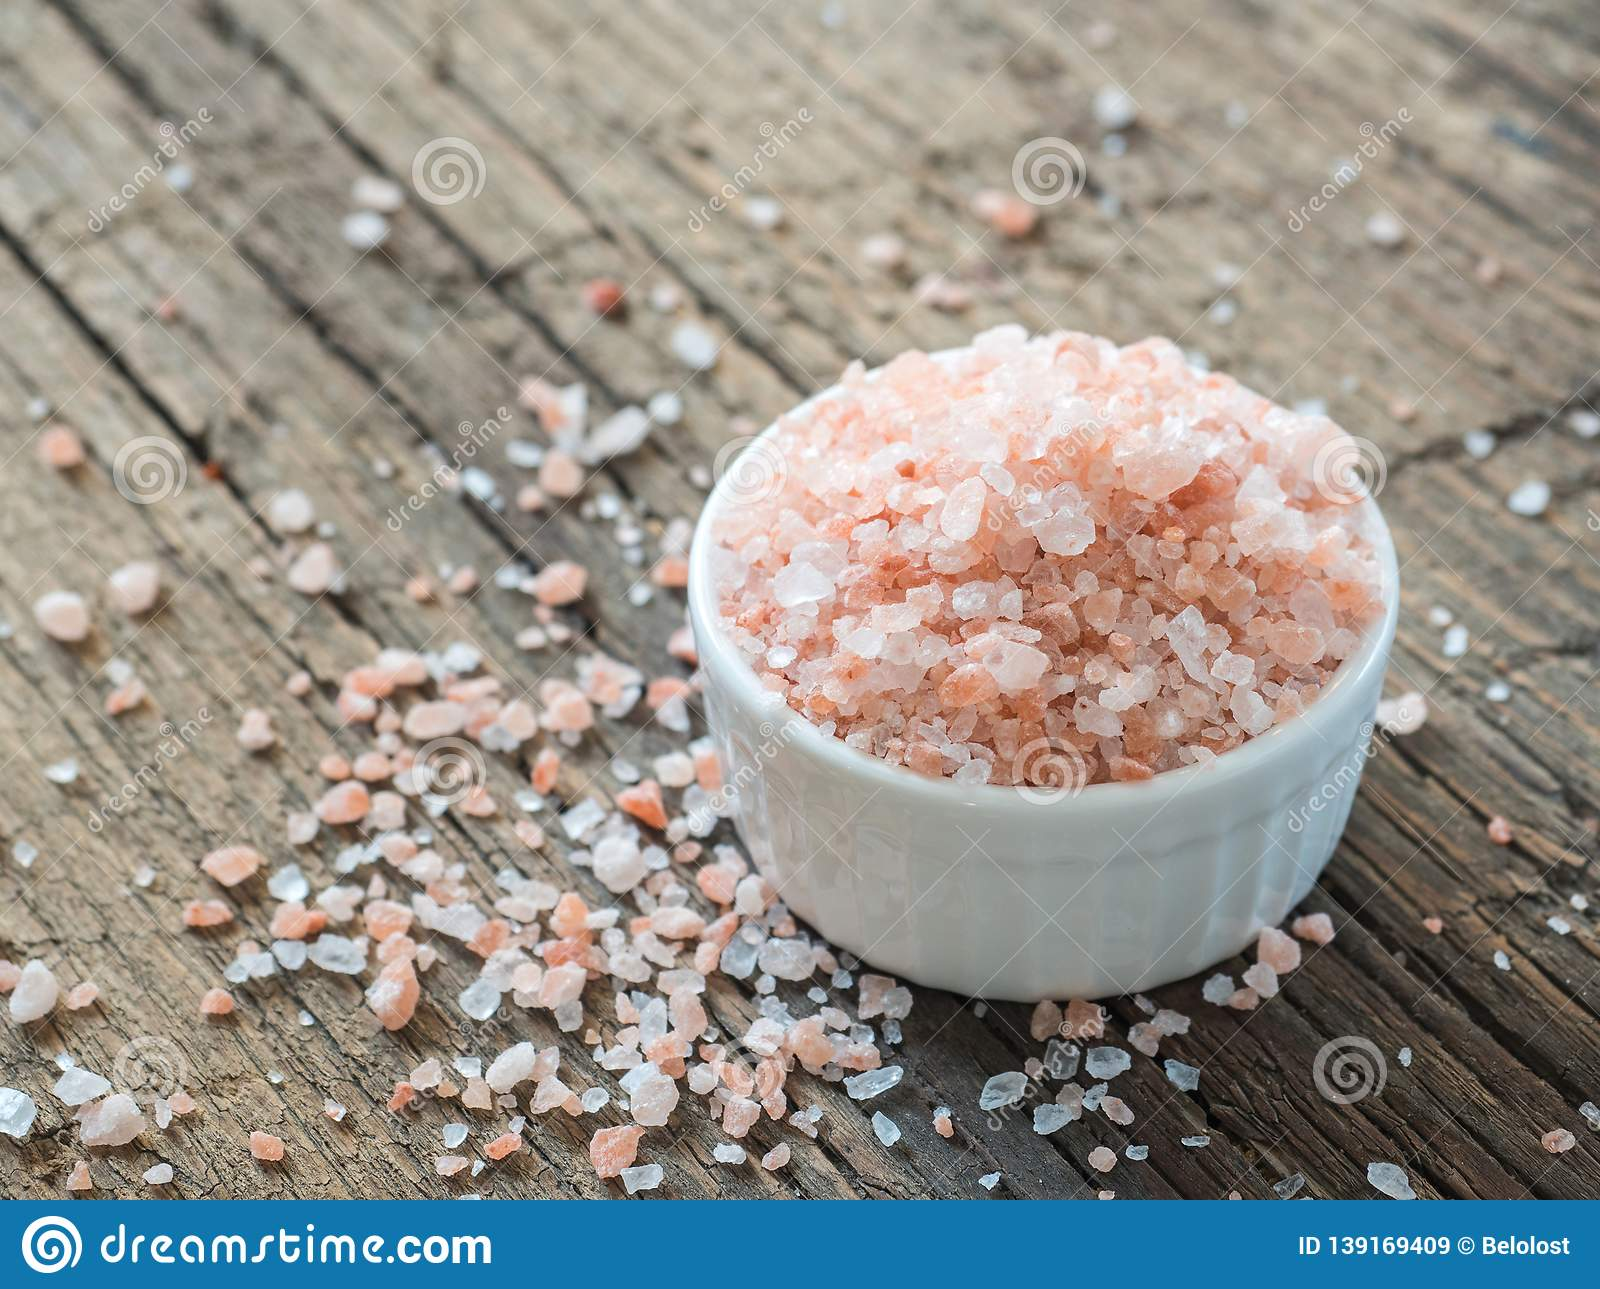 Pink Himalayan salt in white salt shaker on wooden background. Healthy spice closeup